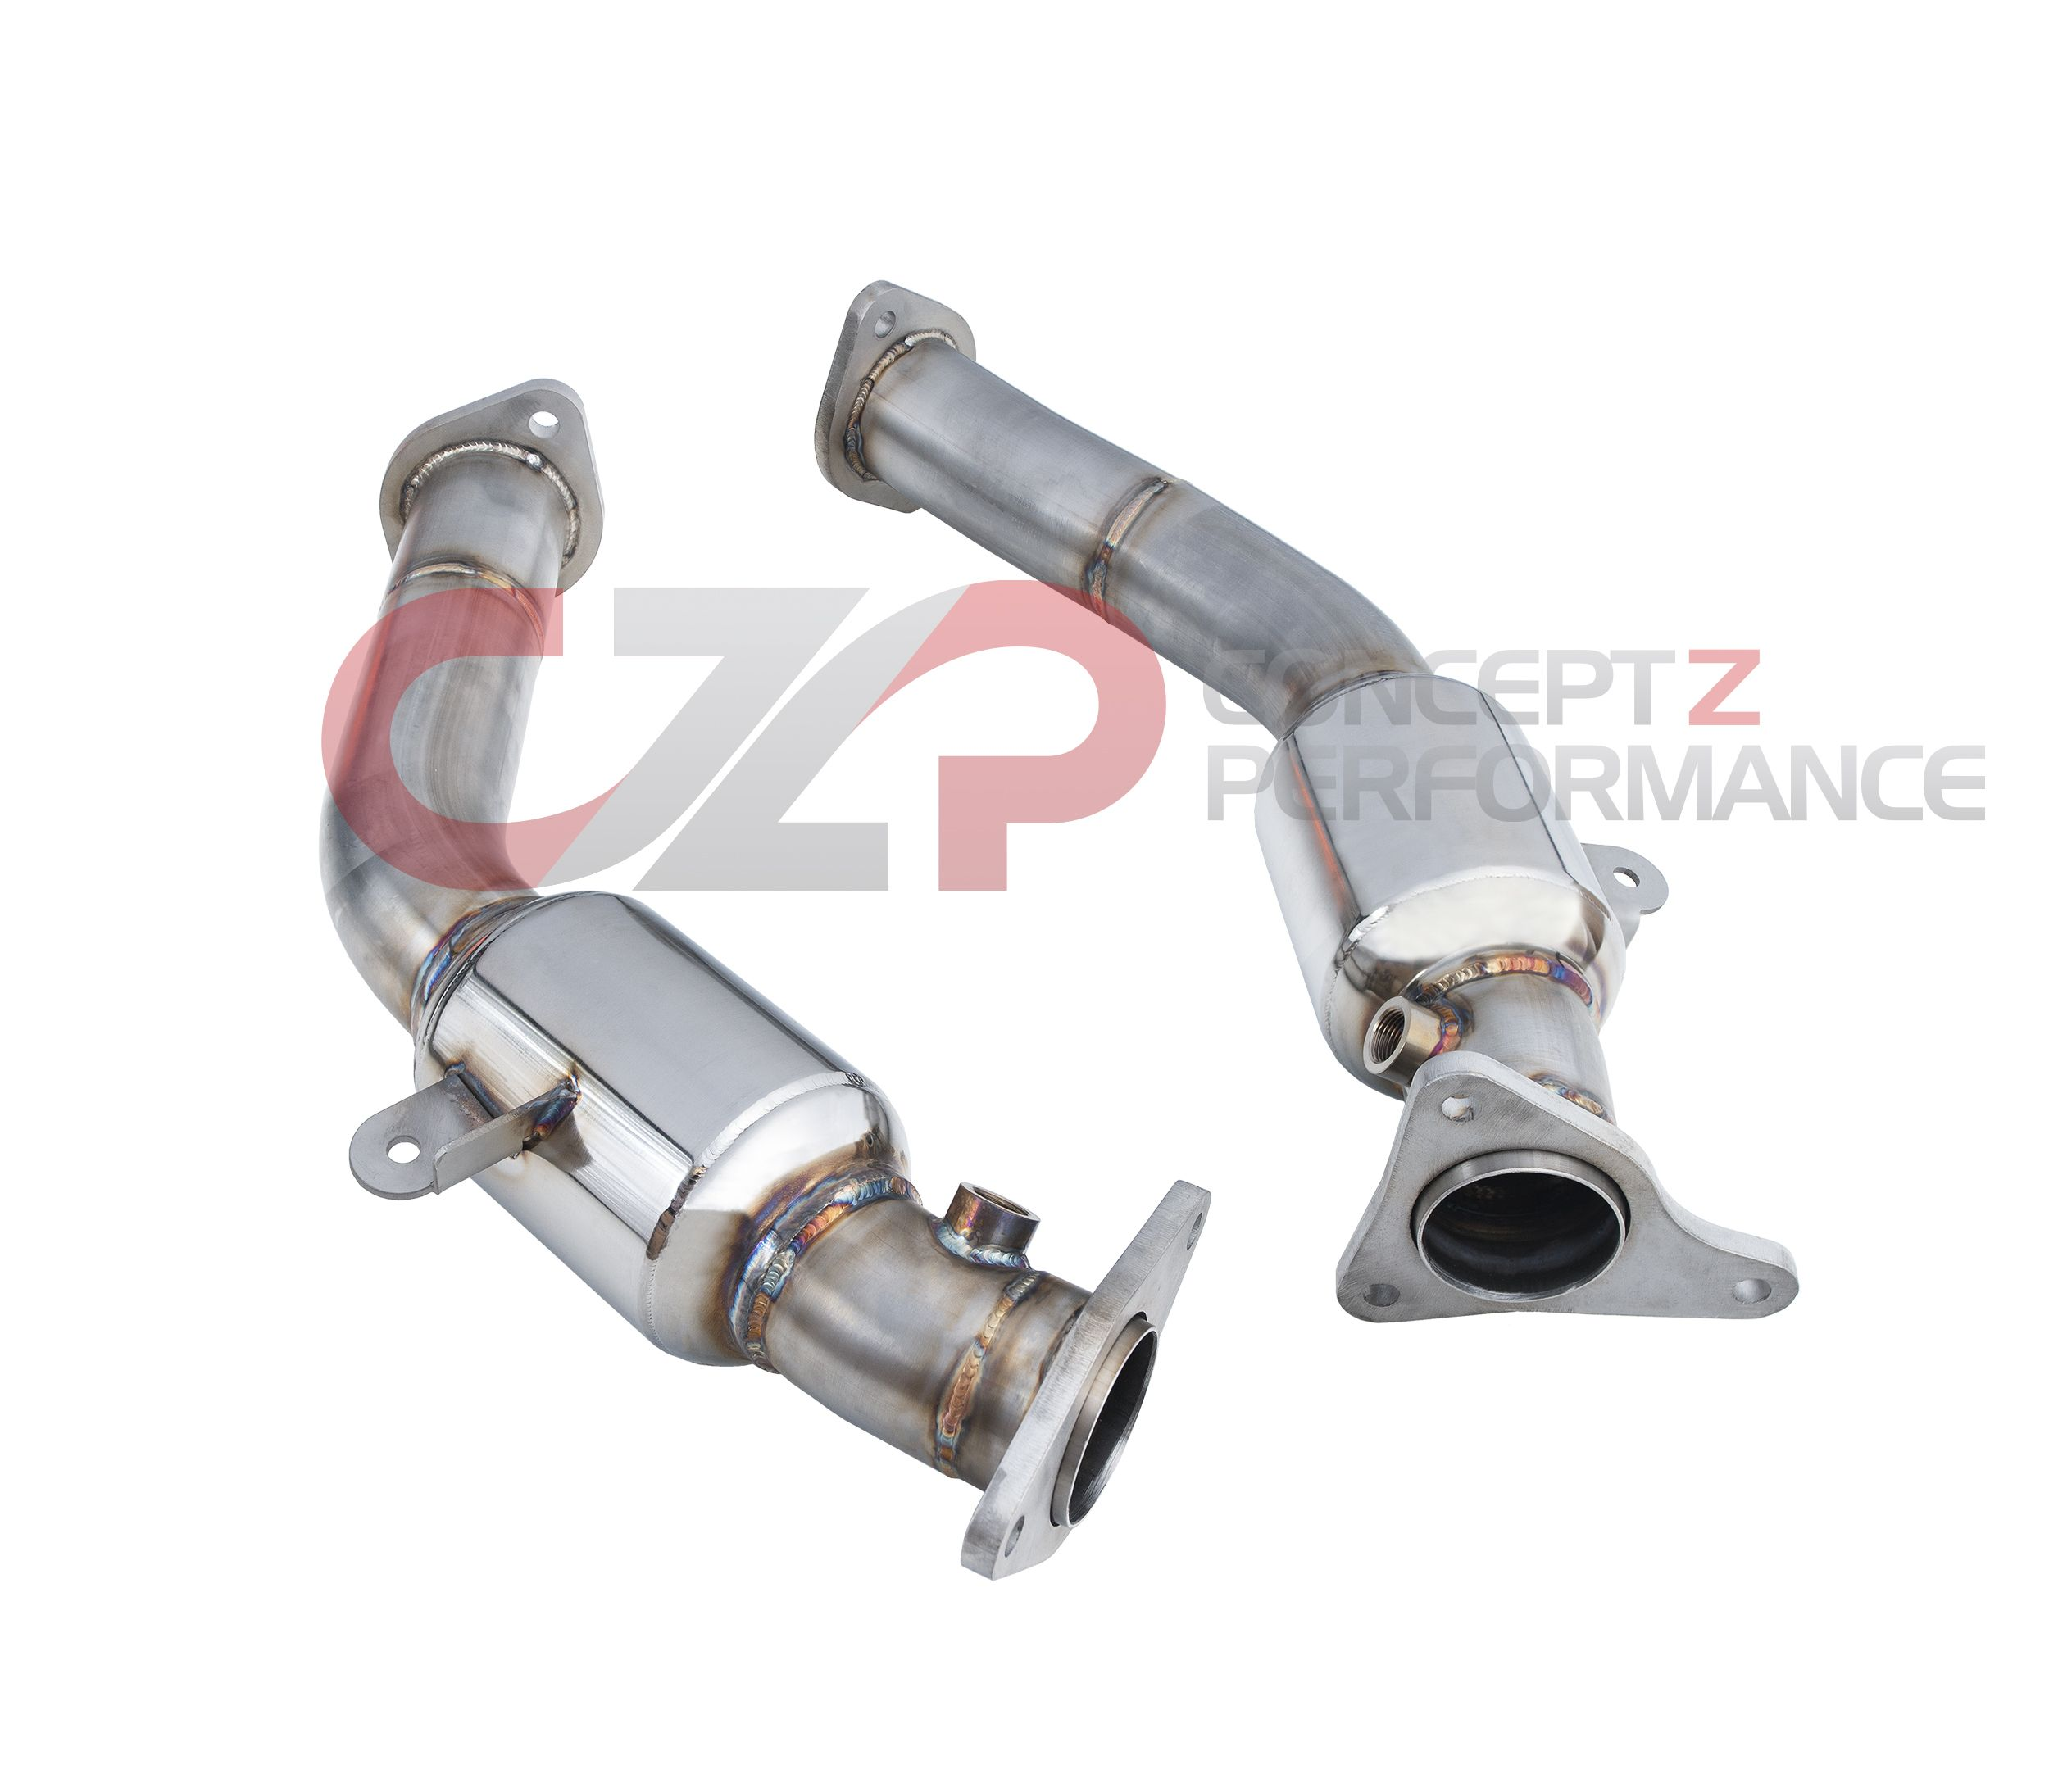 "NEW: CZP by PPE Stainless Steel Lower Downpipes, 2.5"" Resonated - Infiniti Q50 / Q60 3.0t Premium / Red Sport RS400 VR30DDTT"